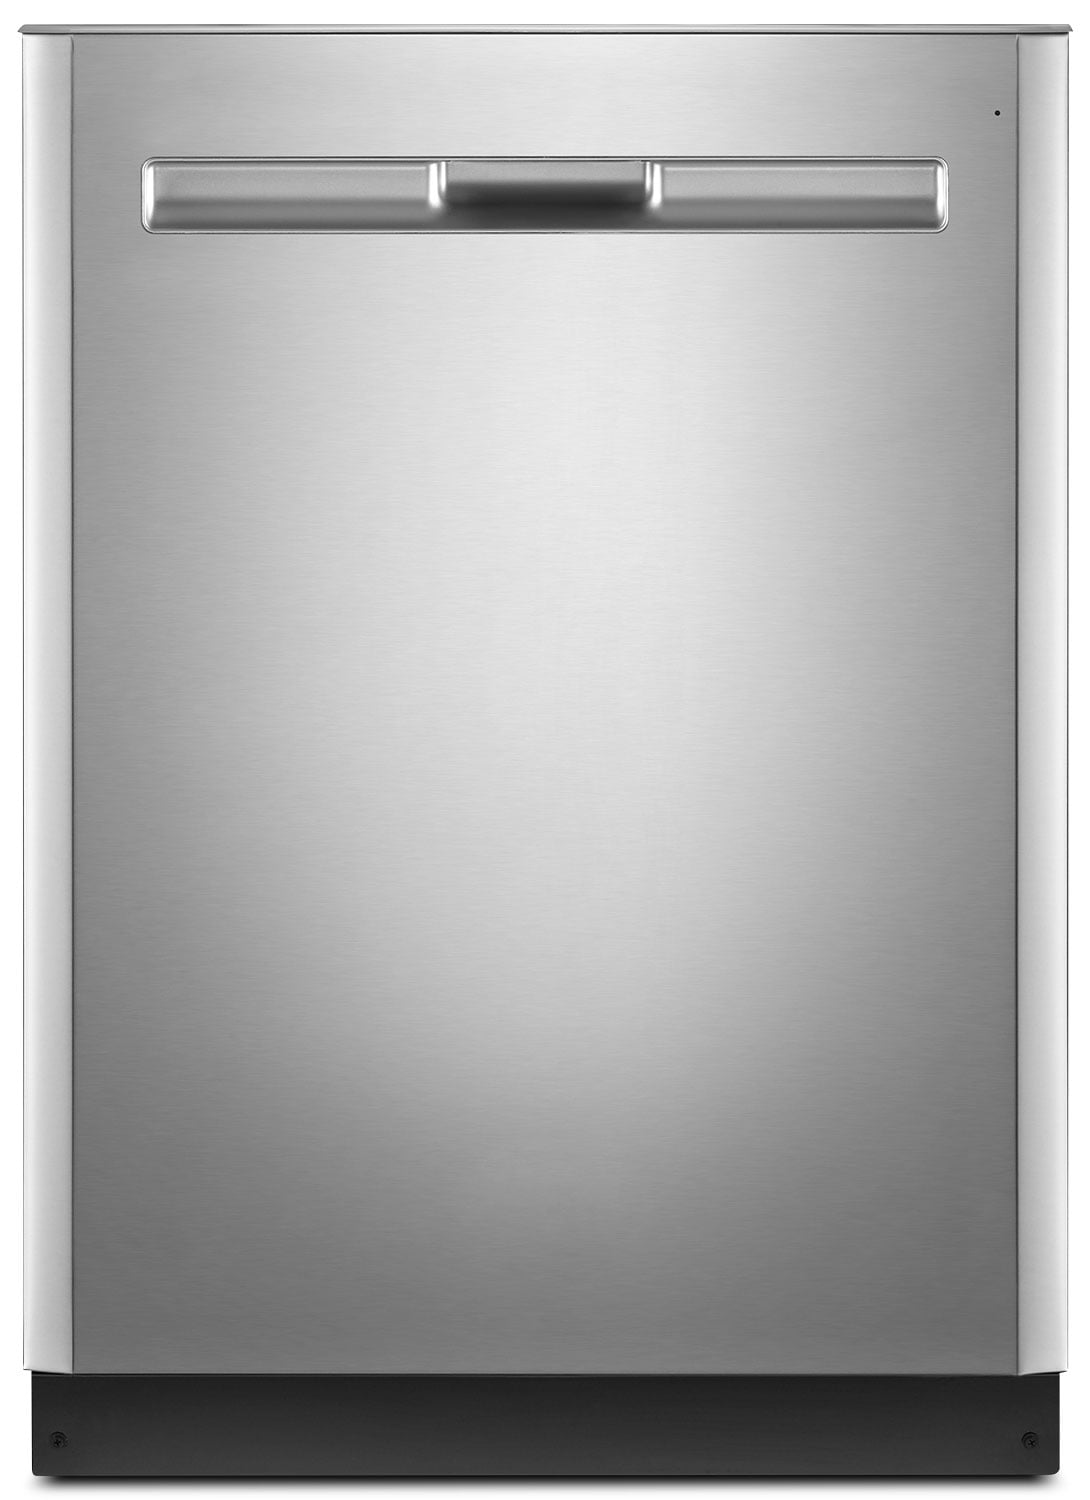 "Maytag Stainless Steel 24"" Dishwasher - MDB8959SFZ"